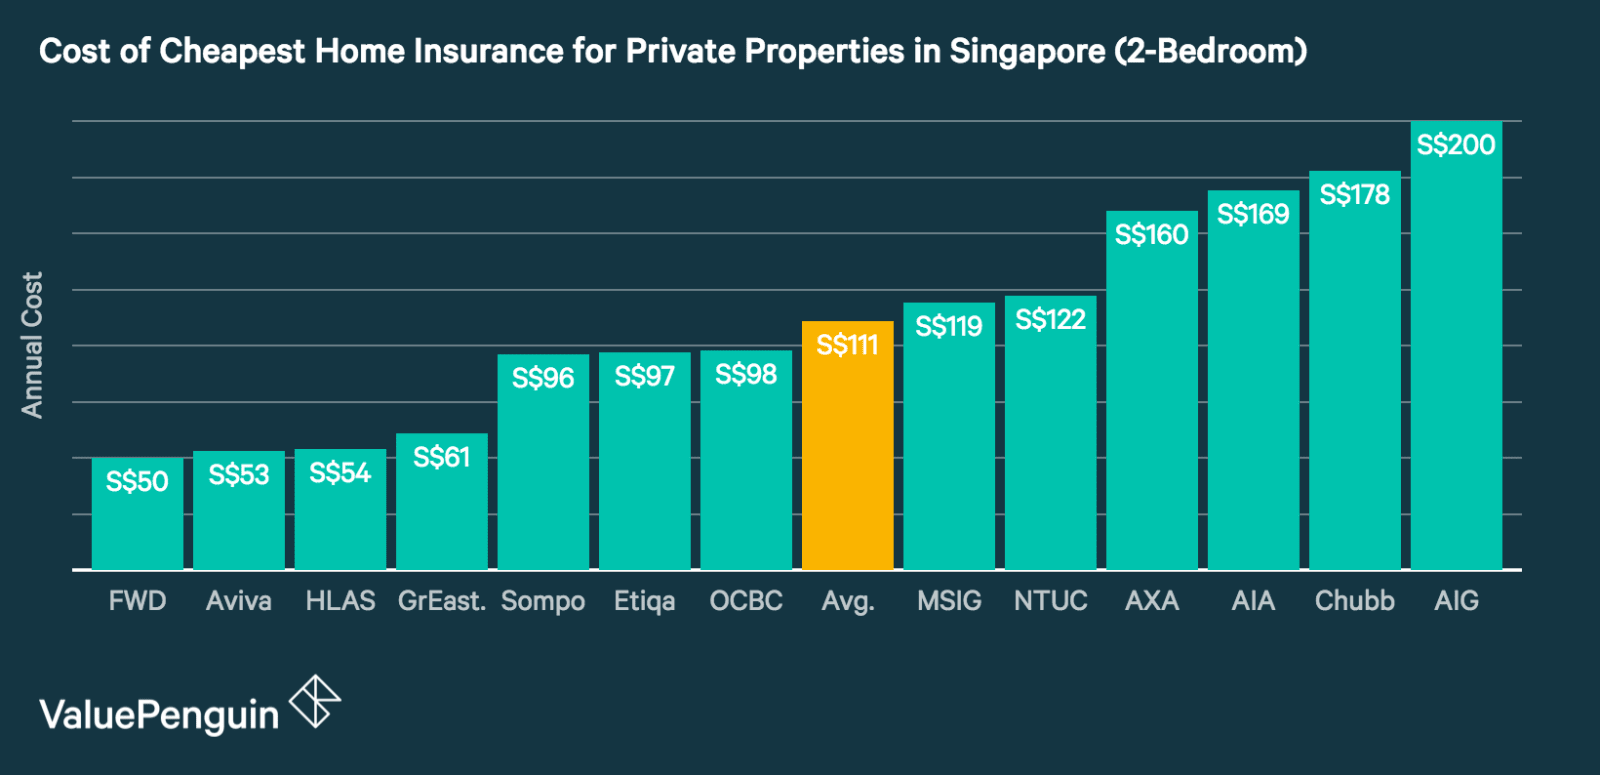 This graph compares the costs of home insurance in Singapore for private properties equivalent to HDB 4-room flats from major insurance companies